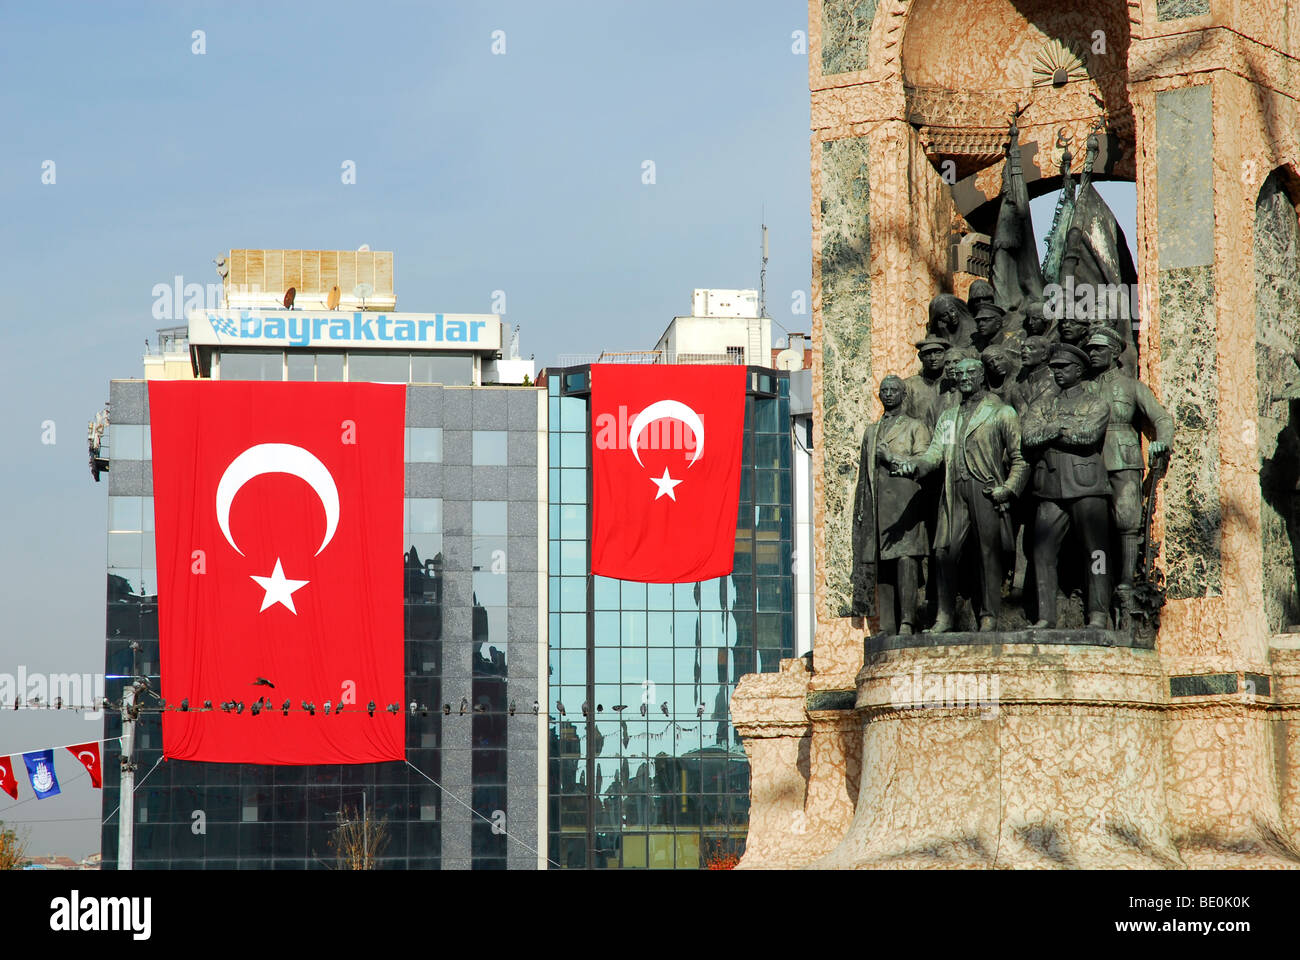 Ataturk monument and national flag at the annual festival of the Republic on October 29th, Taksim Square, Taksim - Stock Image